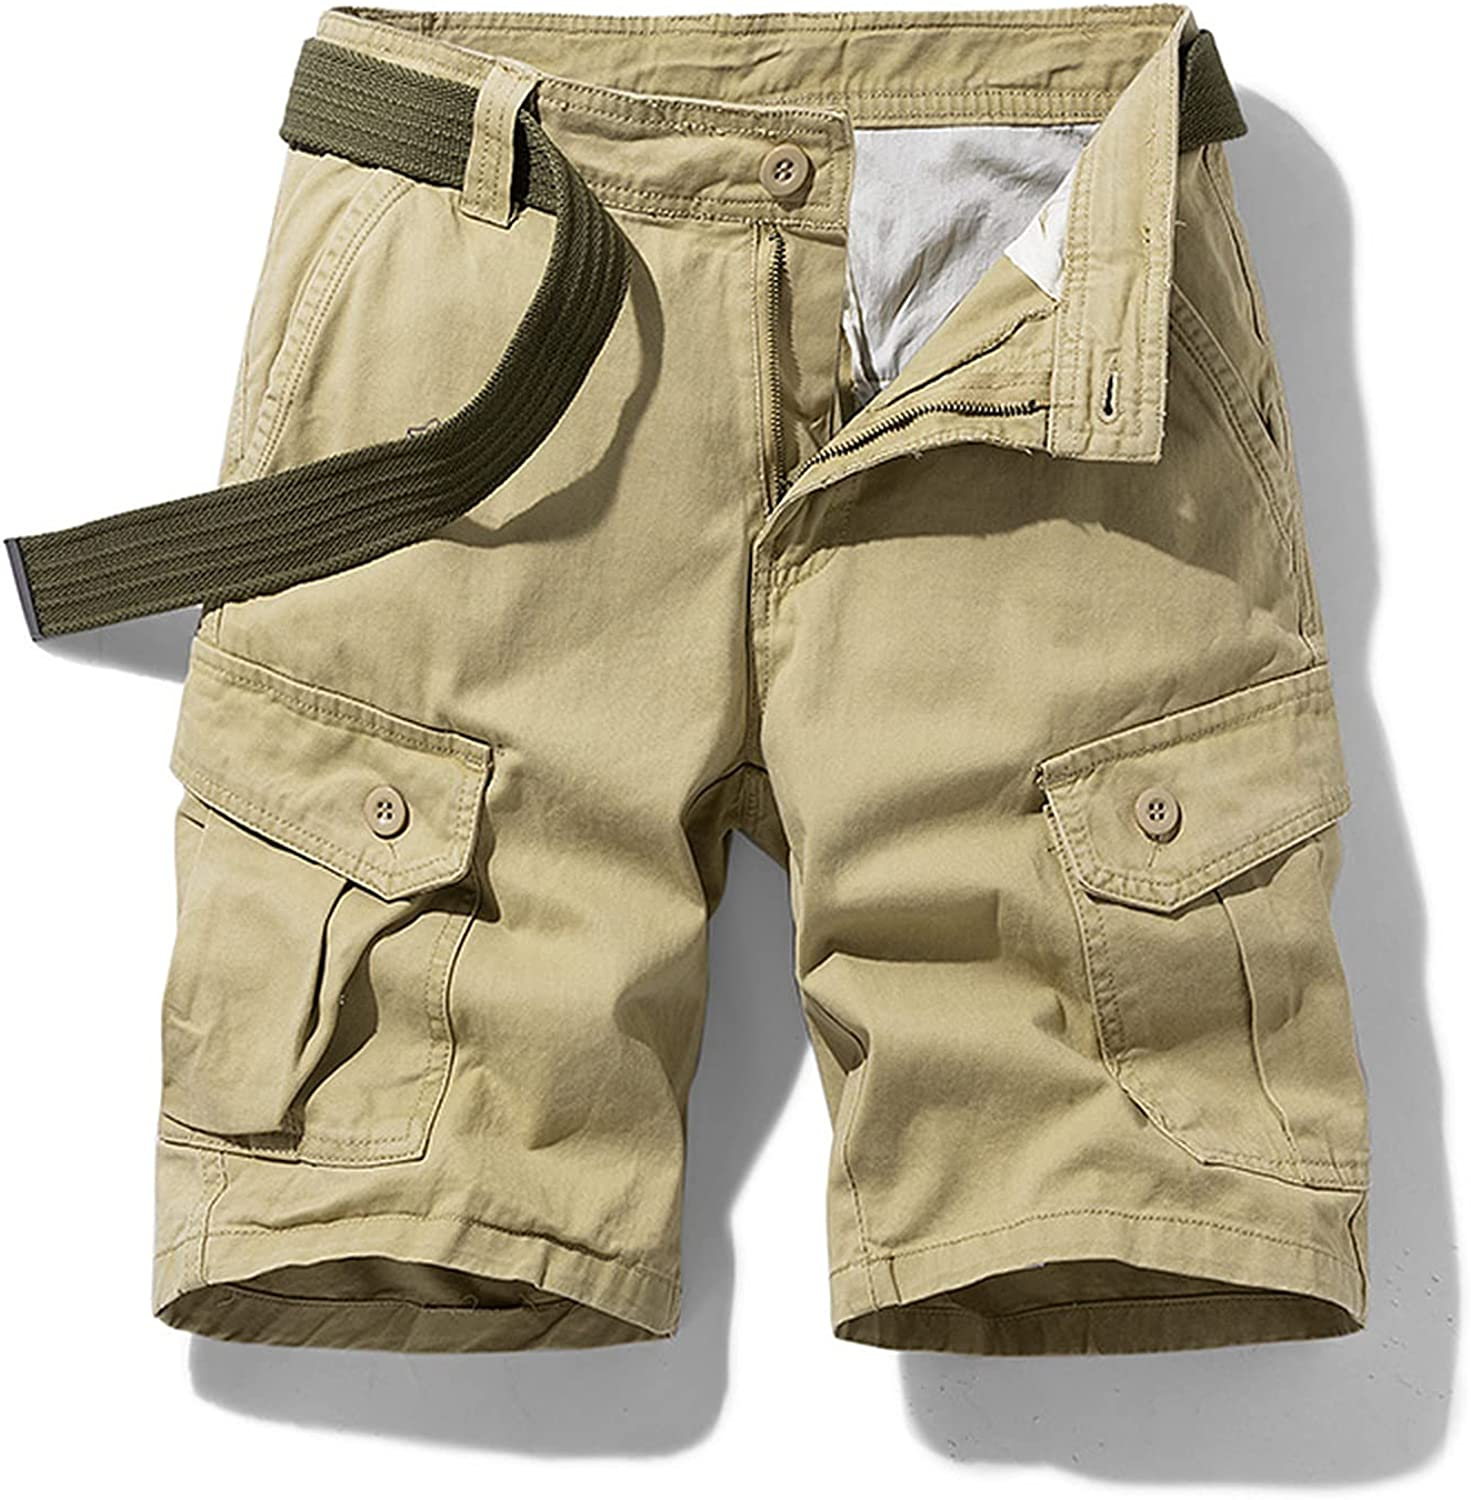 Sukyy Summer New Cargo Shorts Pure Cotton Men Casual Camouflage Outdoor Military Loose Work Army Tactical